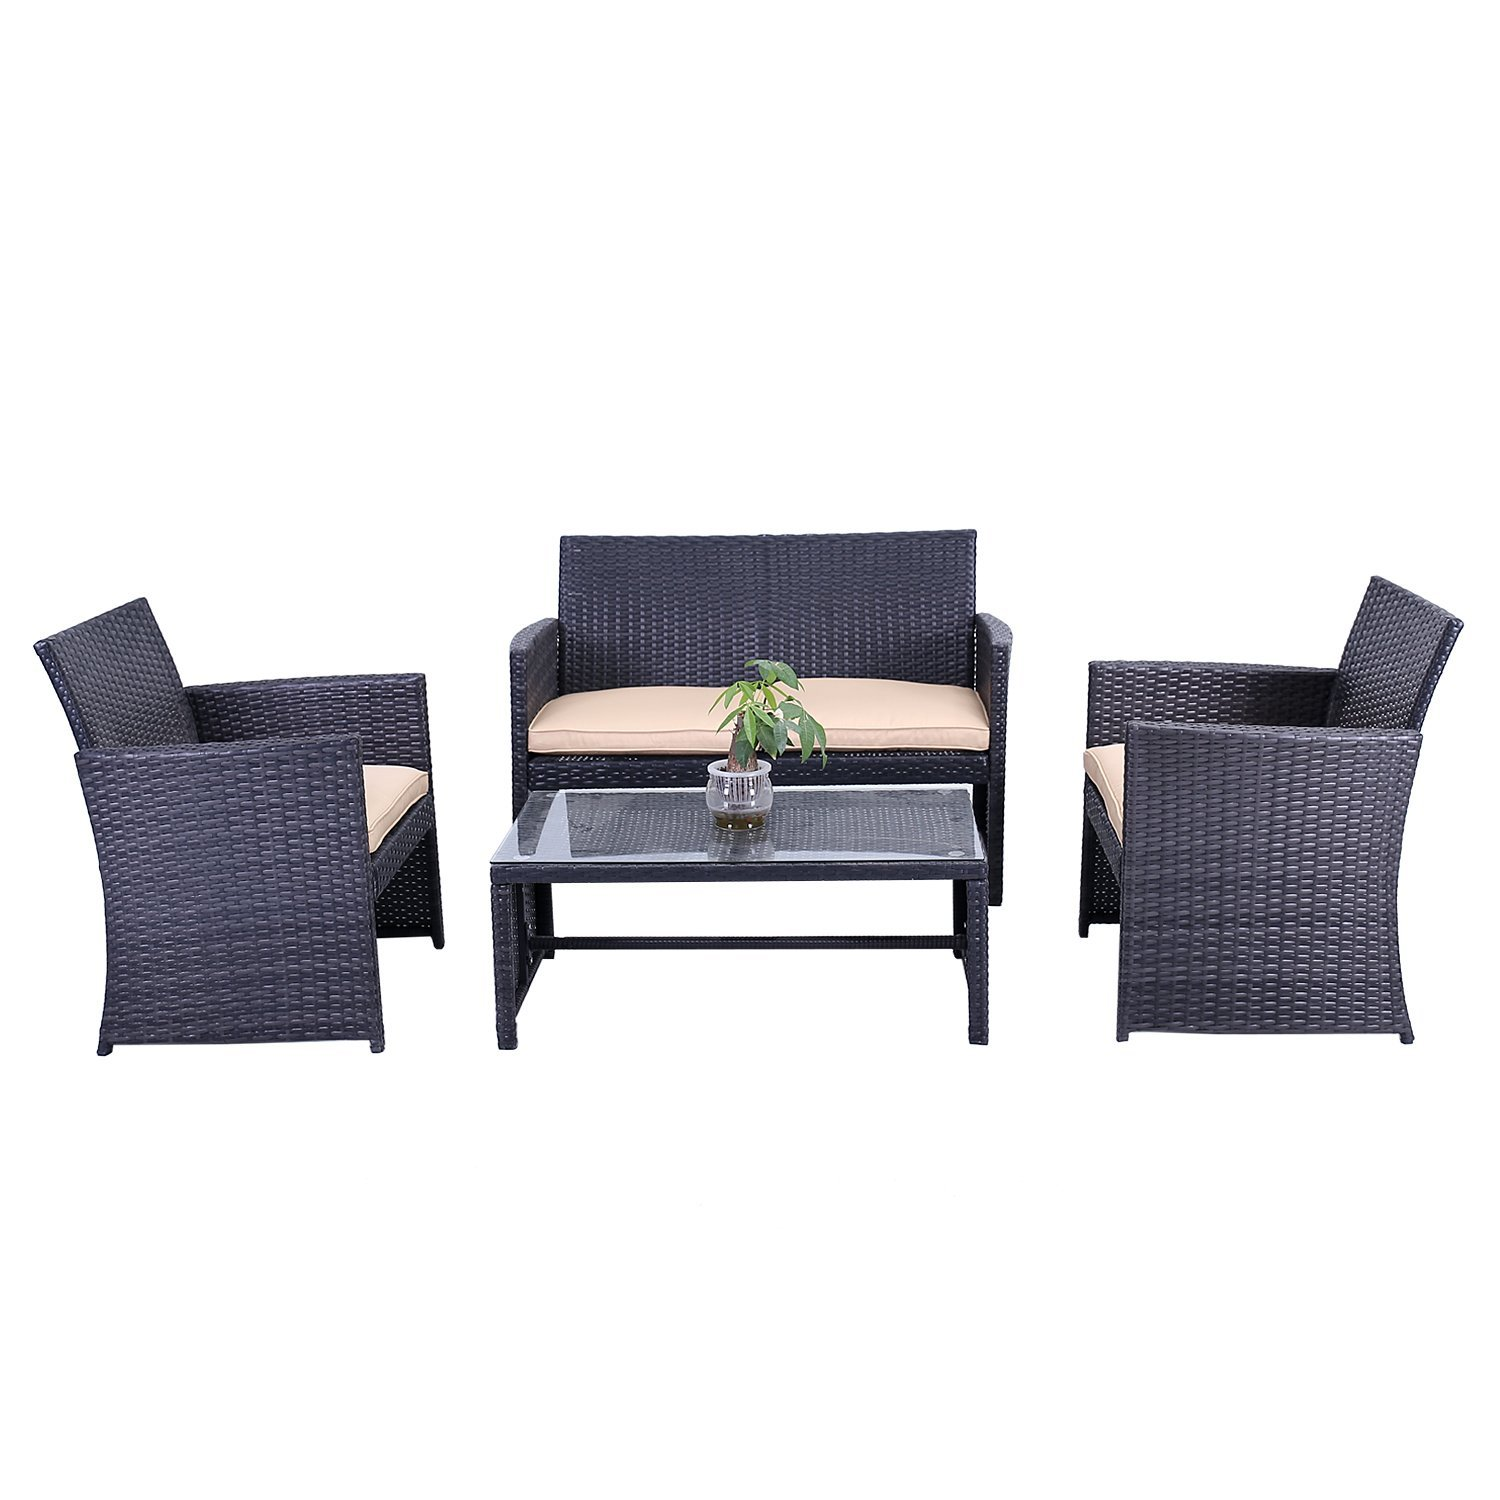 RTCRM07BLK Indoor Outdoor Seattle Rattan 4 Piece Patio Furniture